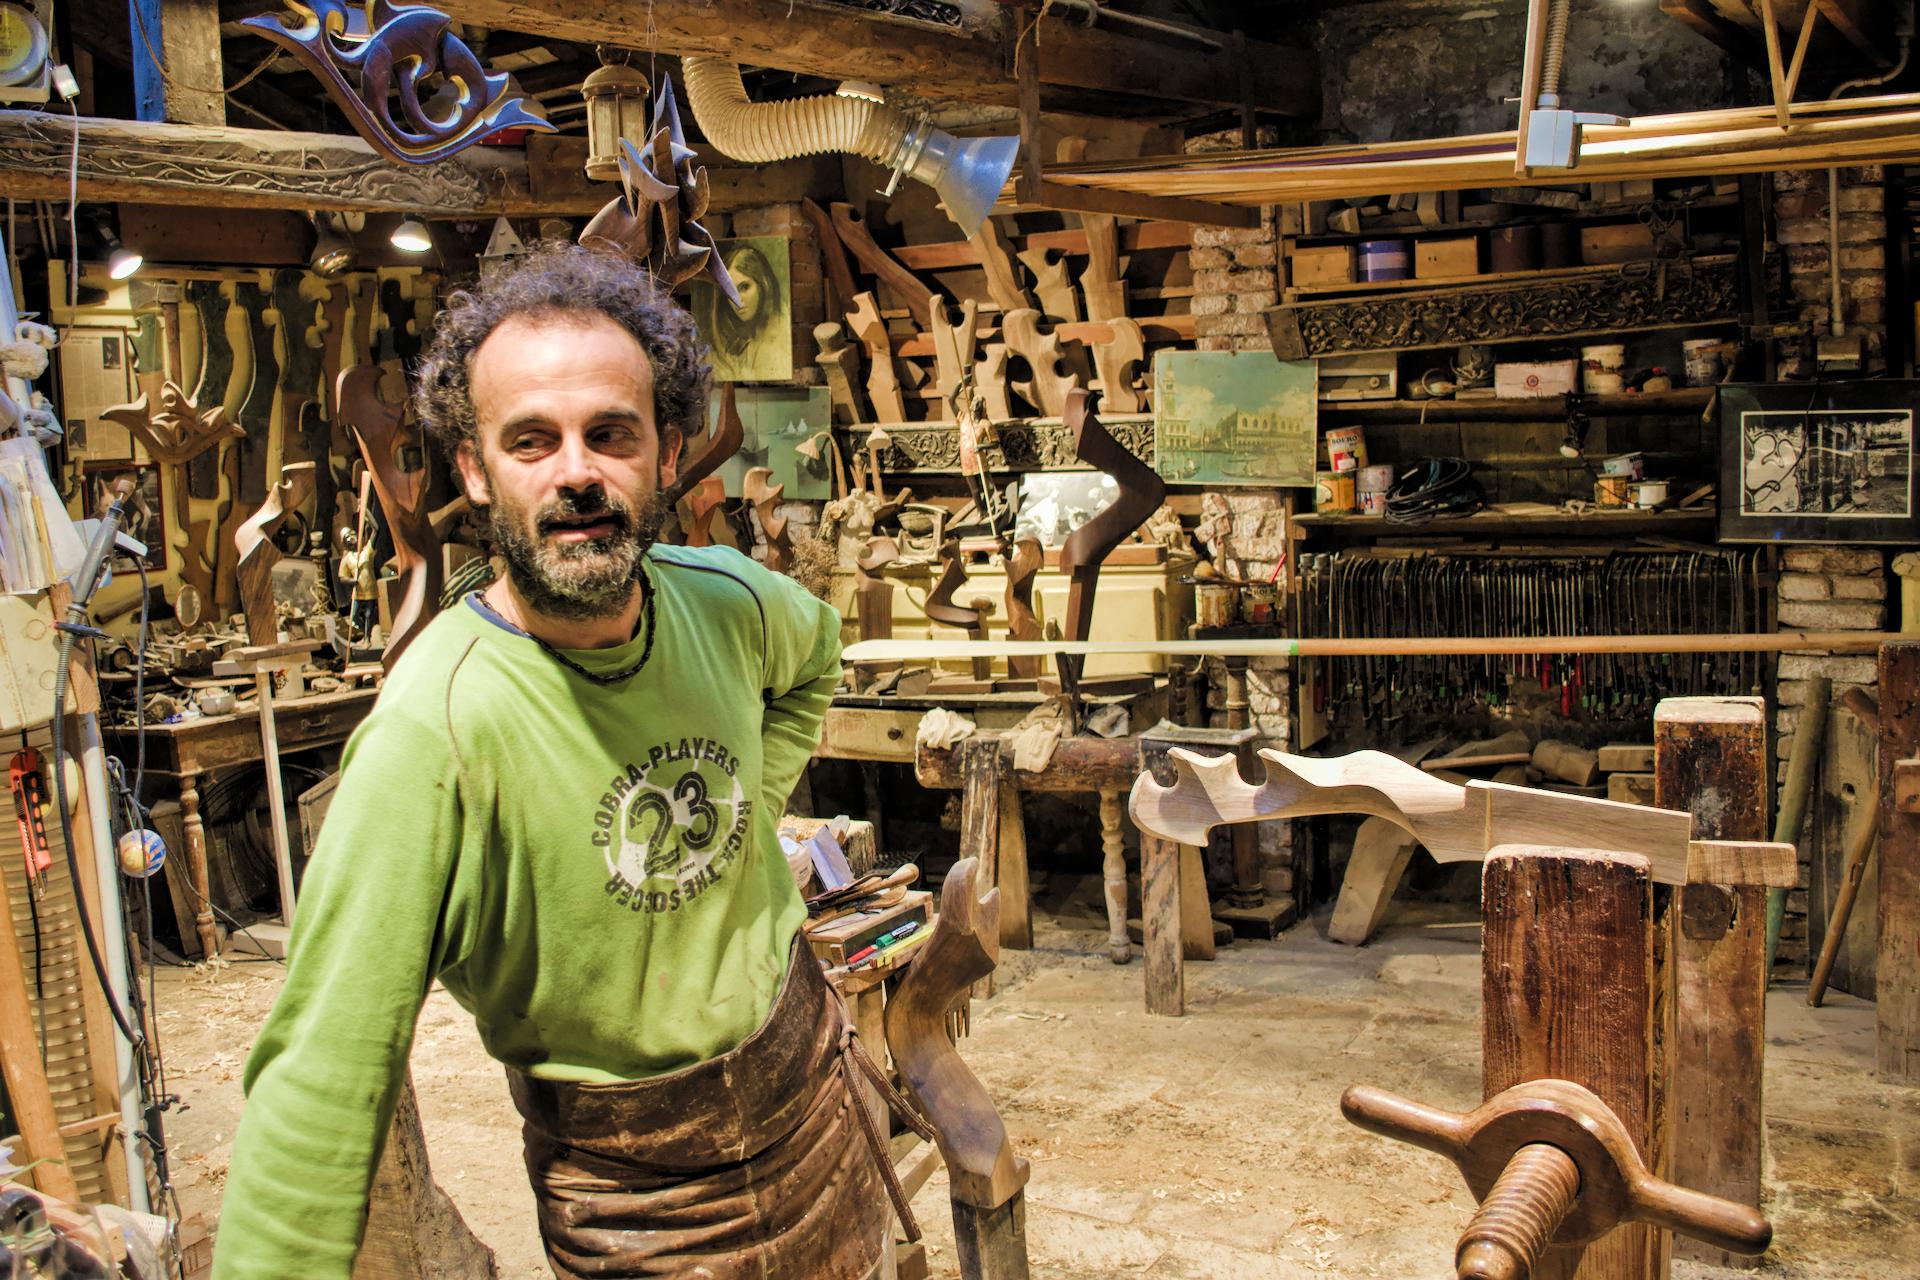 Paolo Brandolisio (oarmaker) in his workshop